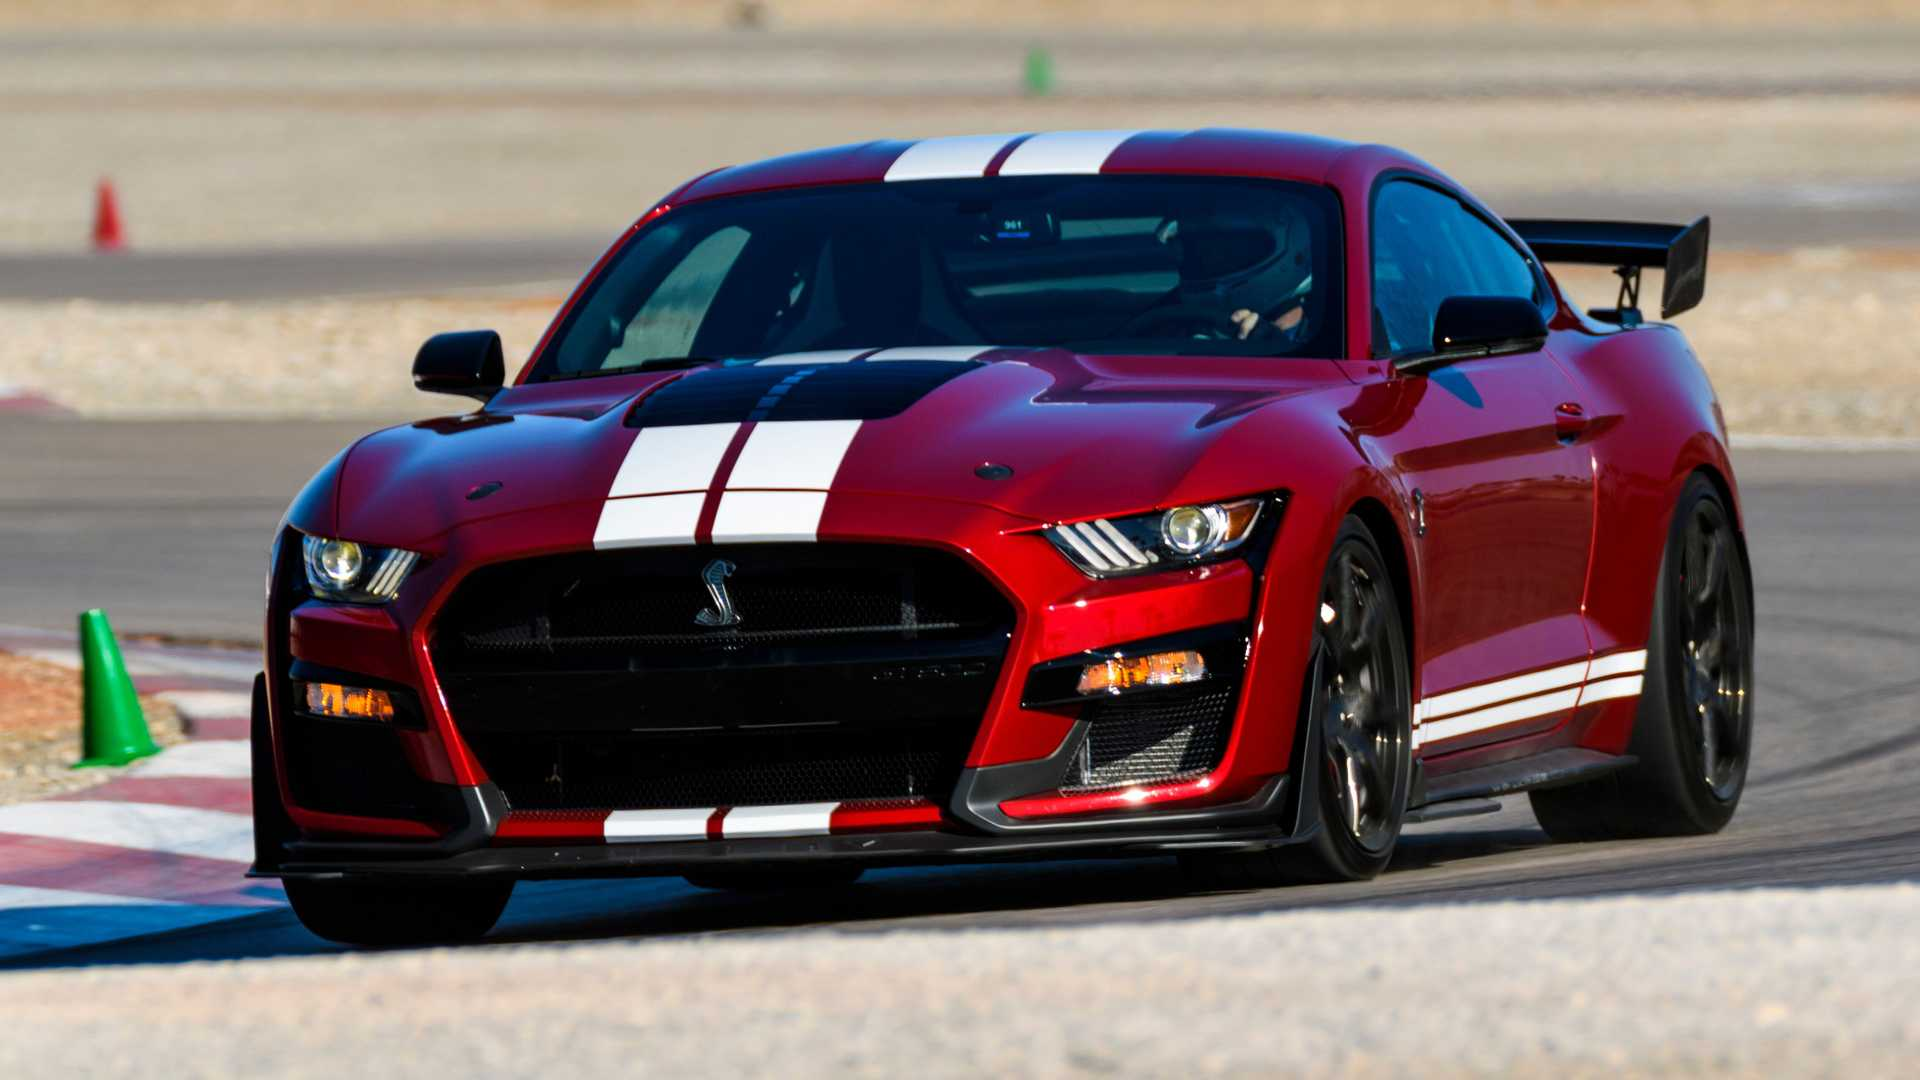 2020-ford-mustang-shelby-gt500-first-drive (2).jpg